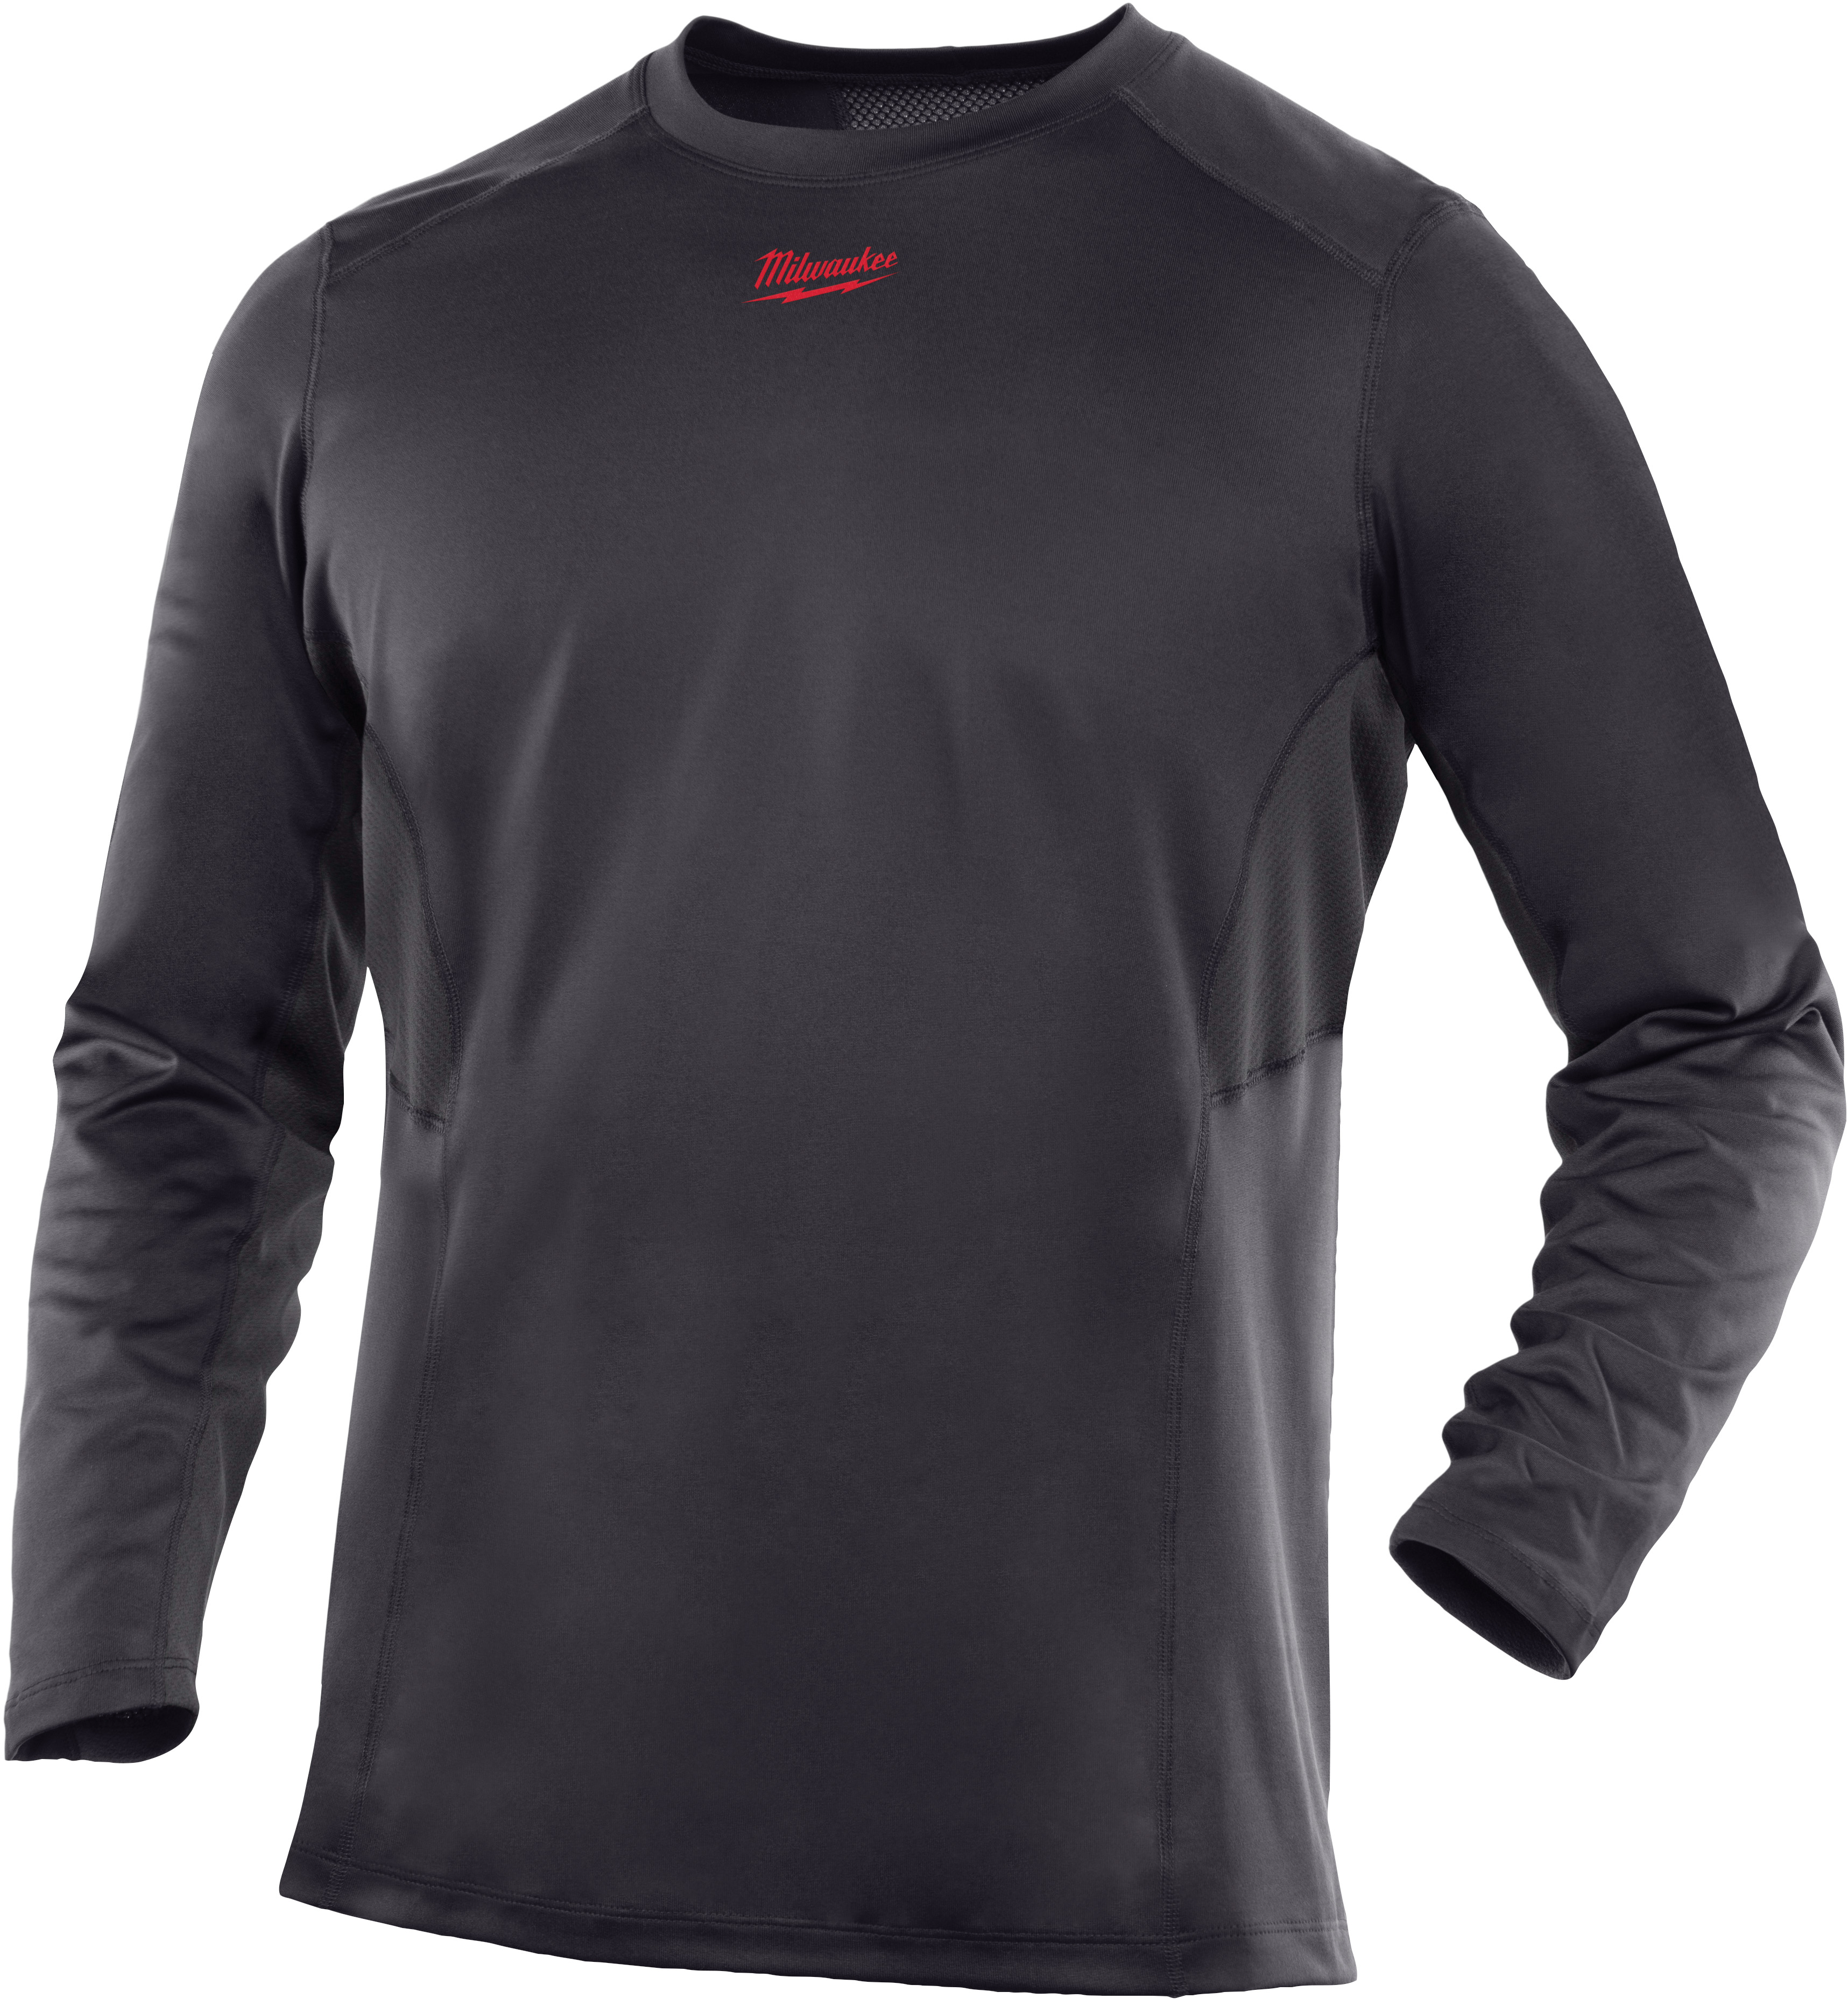 Milwaukee 401G-XL WorkSkin™ Mid Weight Base Layer - Gray